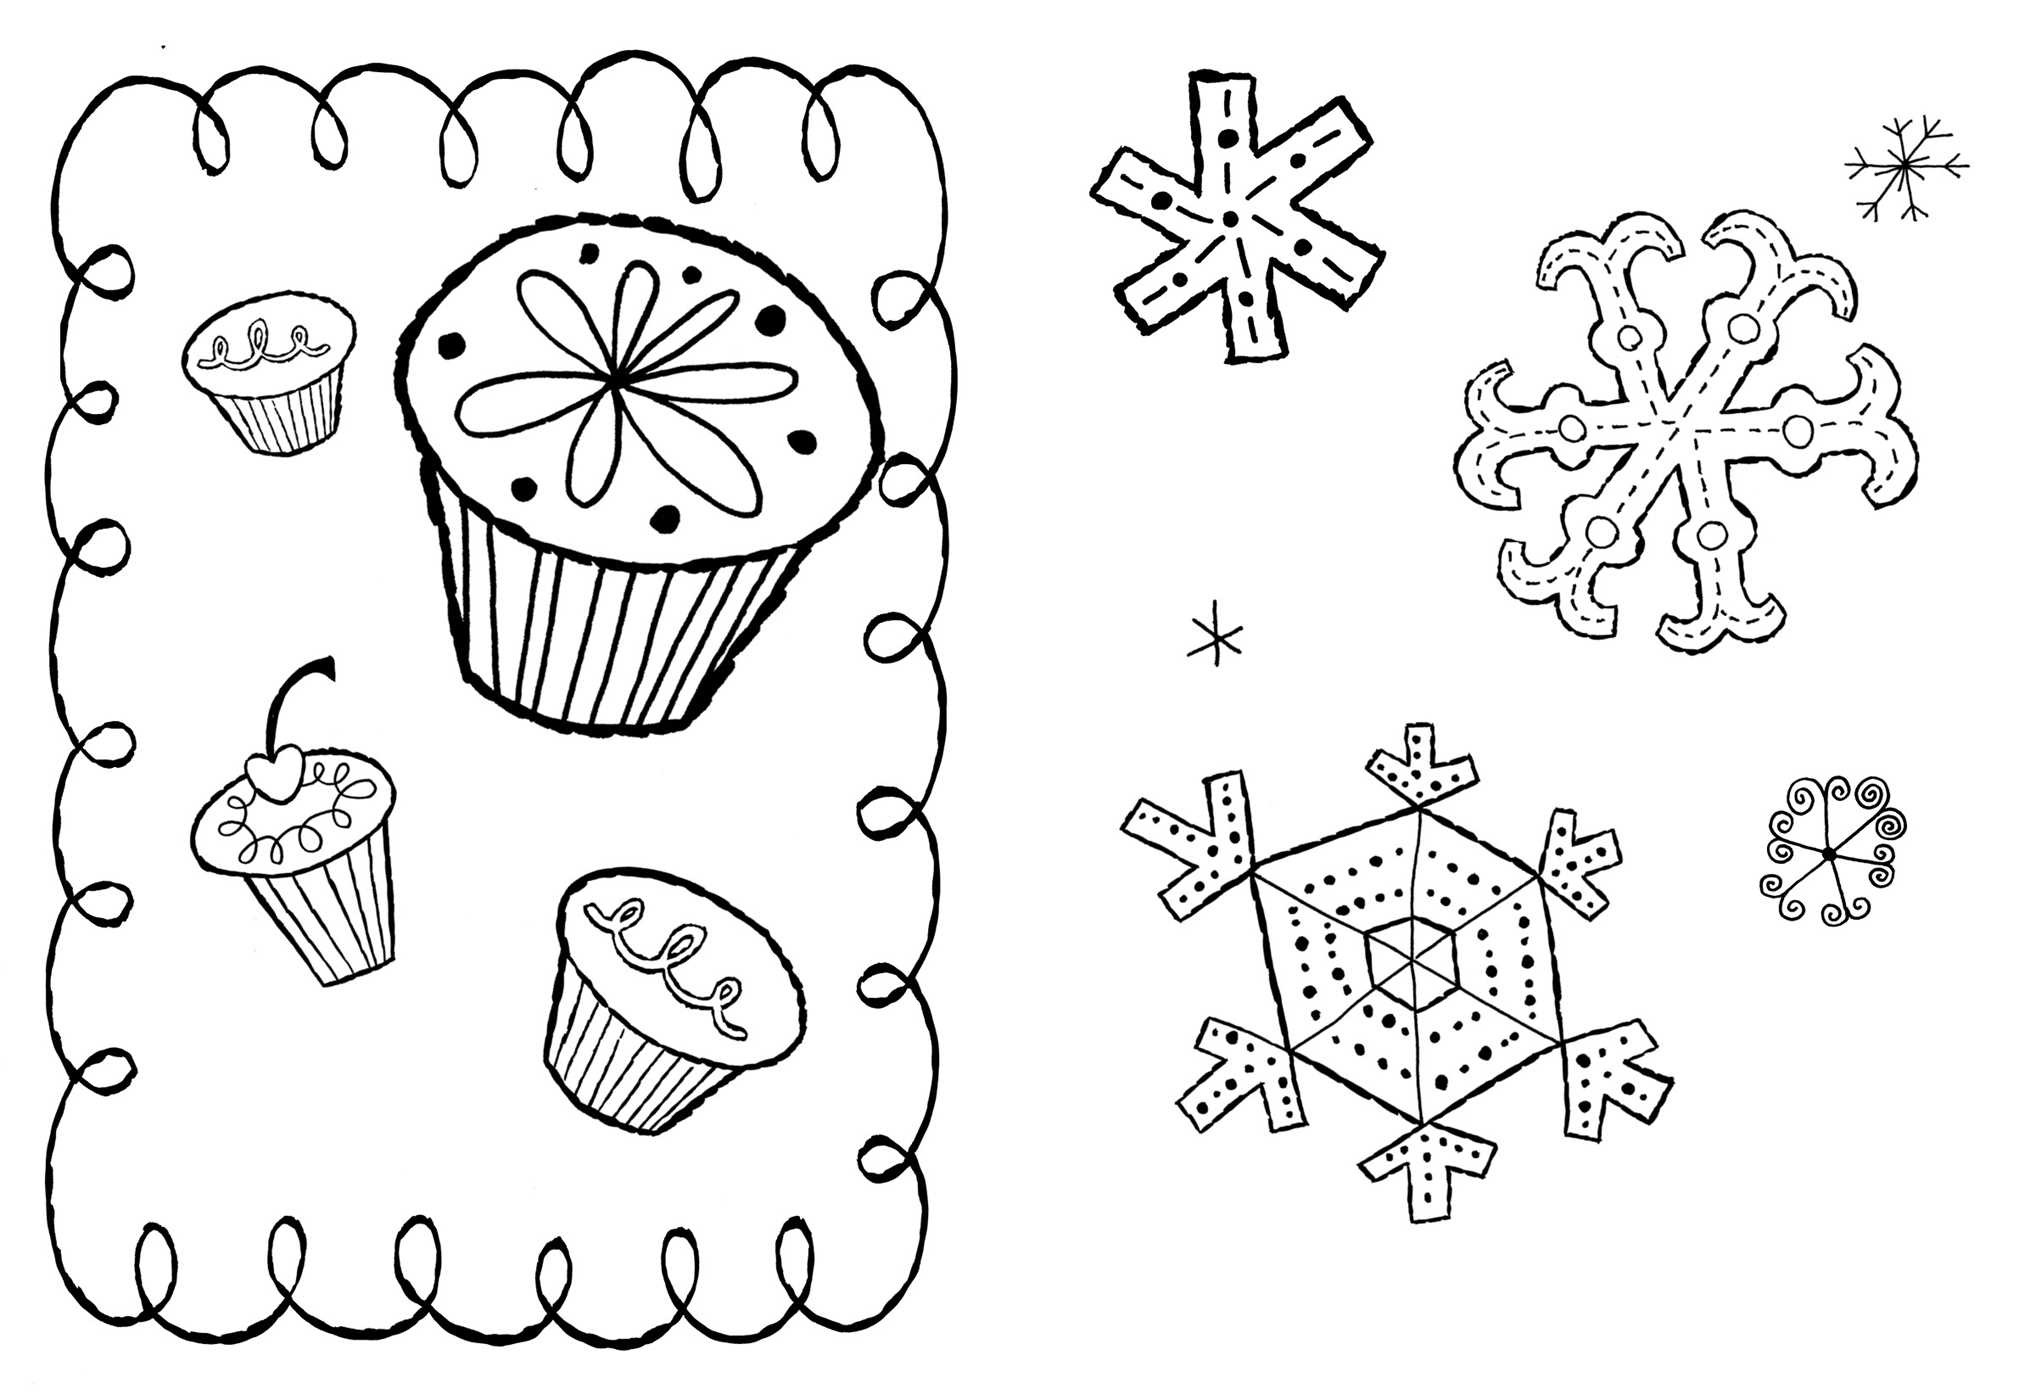 Dream-doodle-draw-gift-set-9781481471596.in02